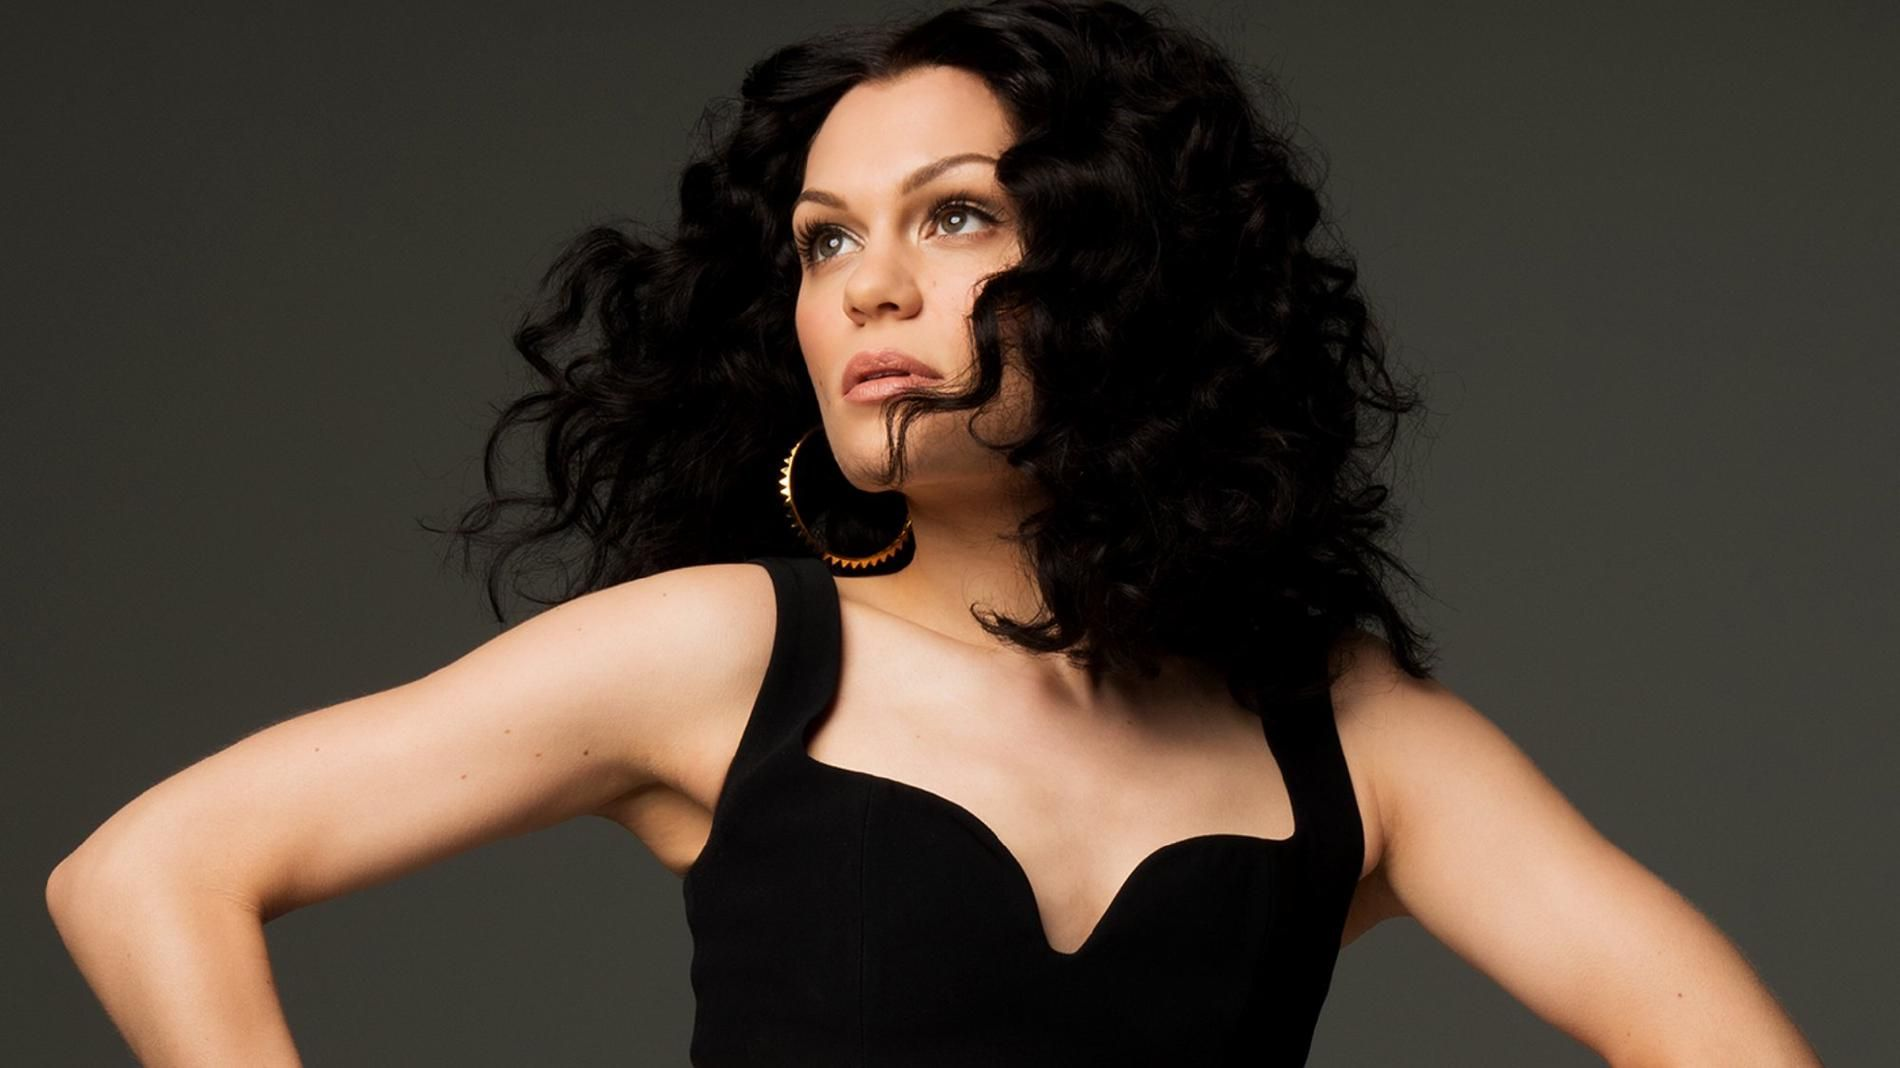 jessie j sweet talker torrent